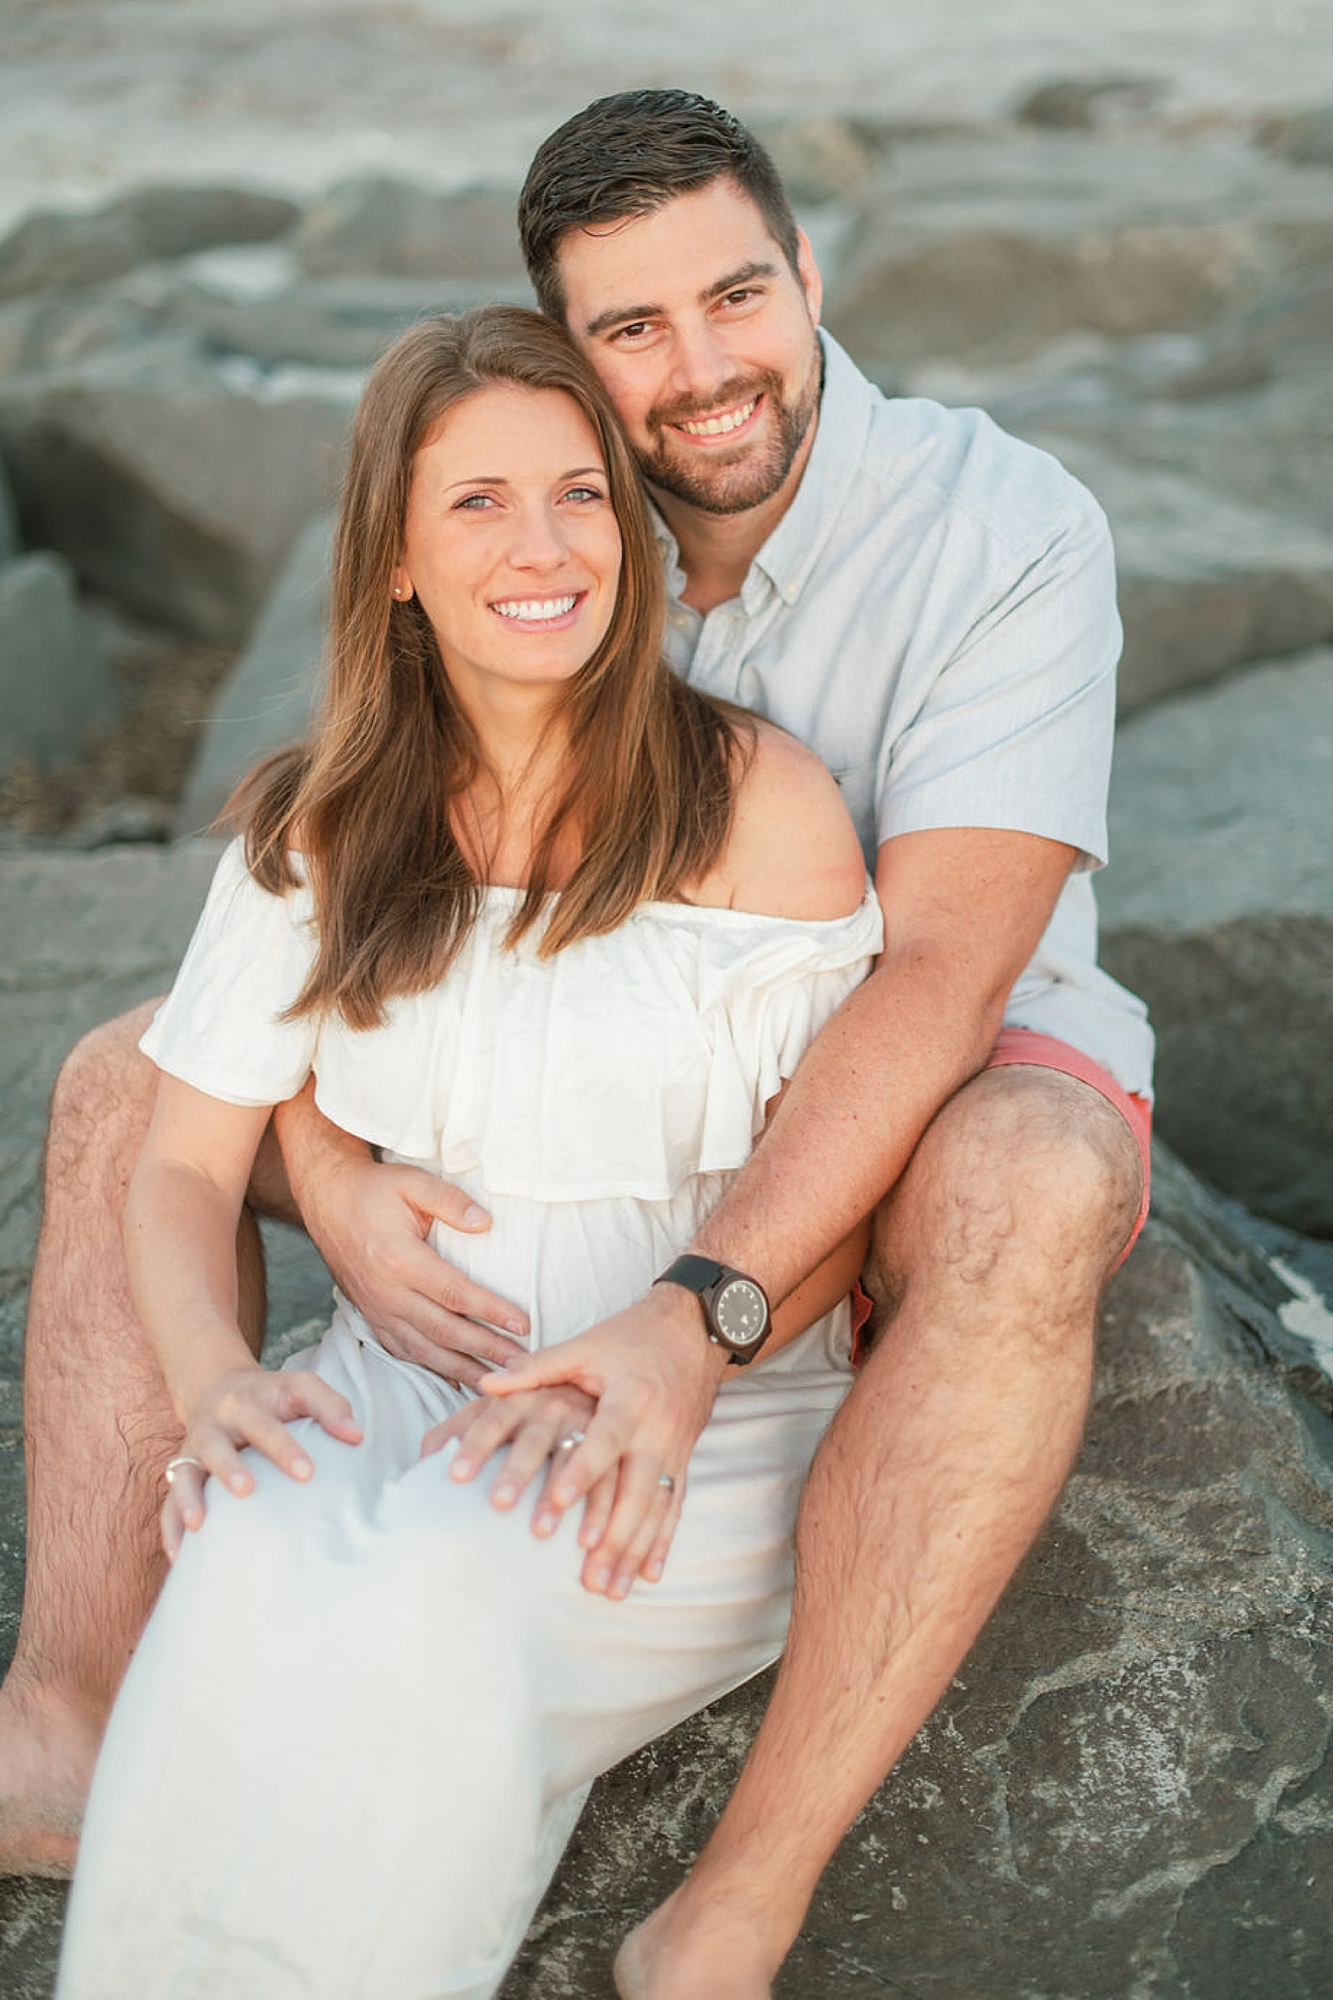 Glowy and Romantic Maternity Photography in Ocean City NJ by Magdalena Studios 0008